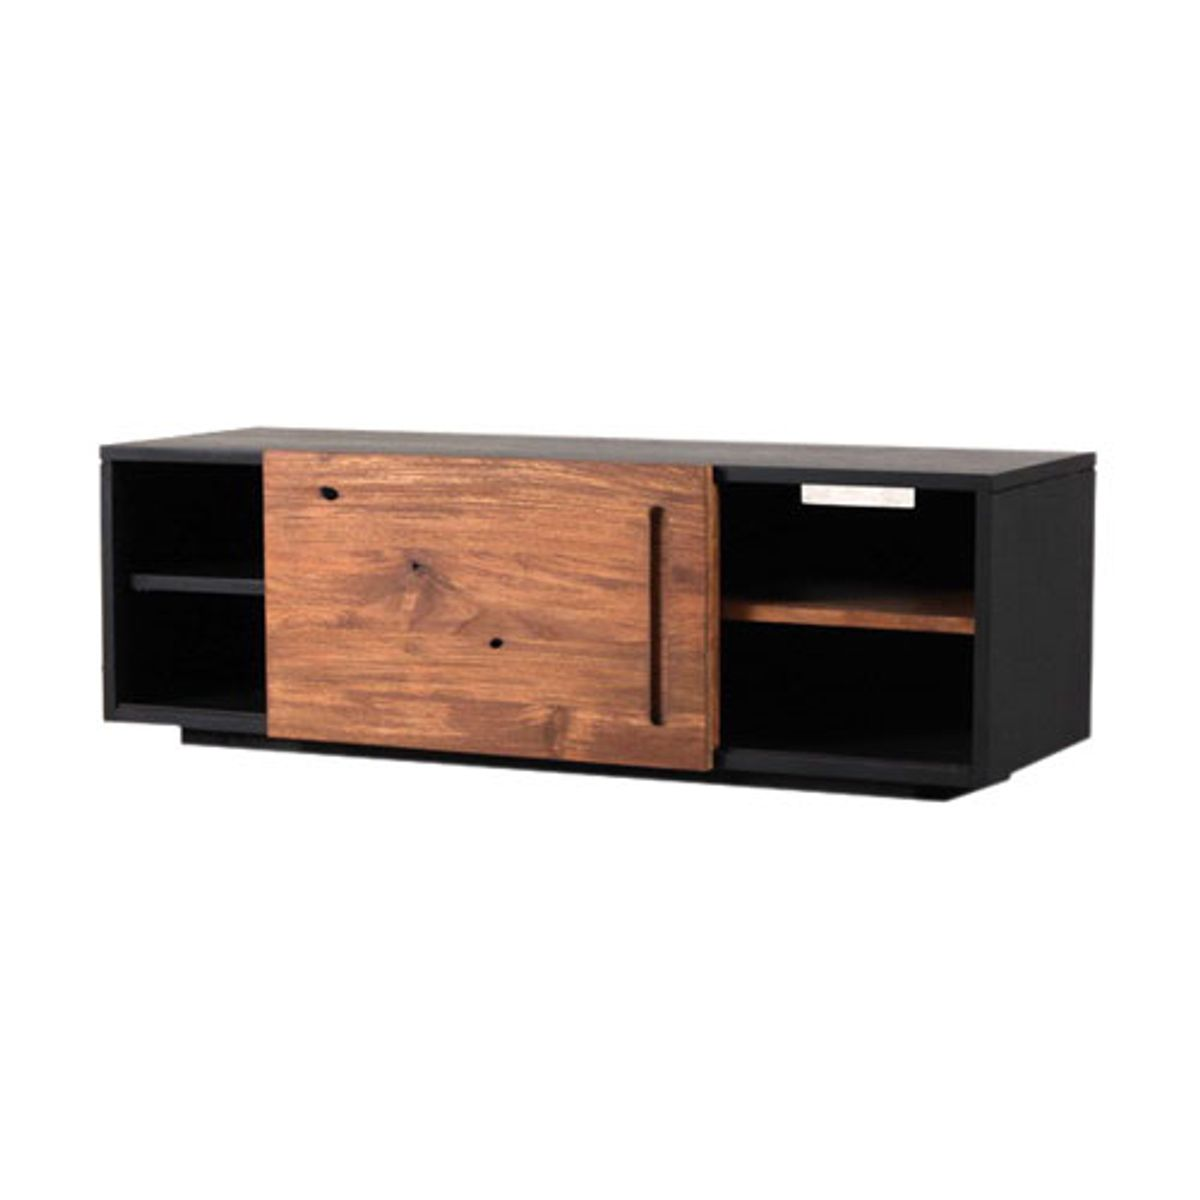 meuble tv bas en bois teck 1 ou 2 portes coulissantes sotra decoclico. Black Bedroom Furniture Sets. Home Design Ideas